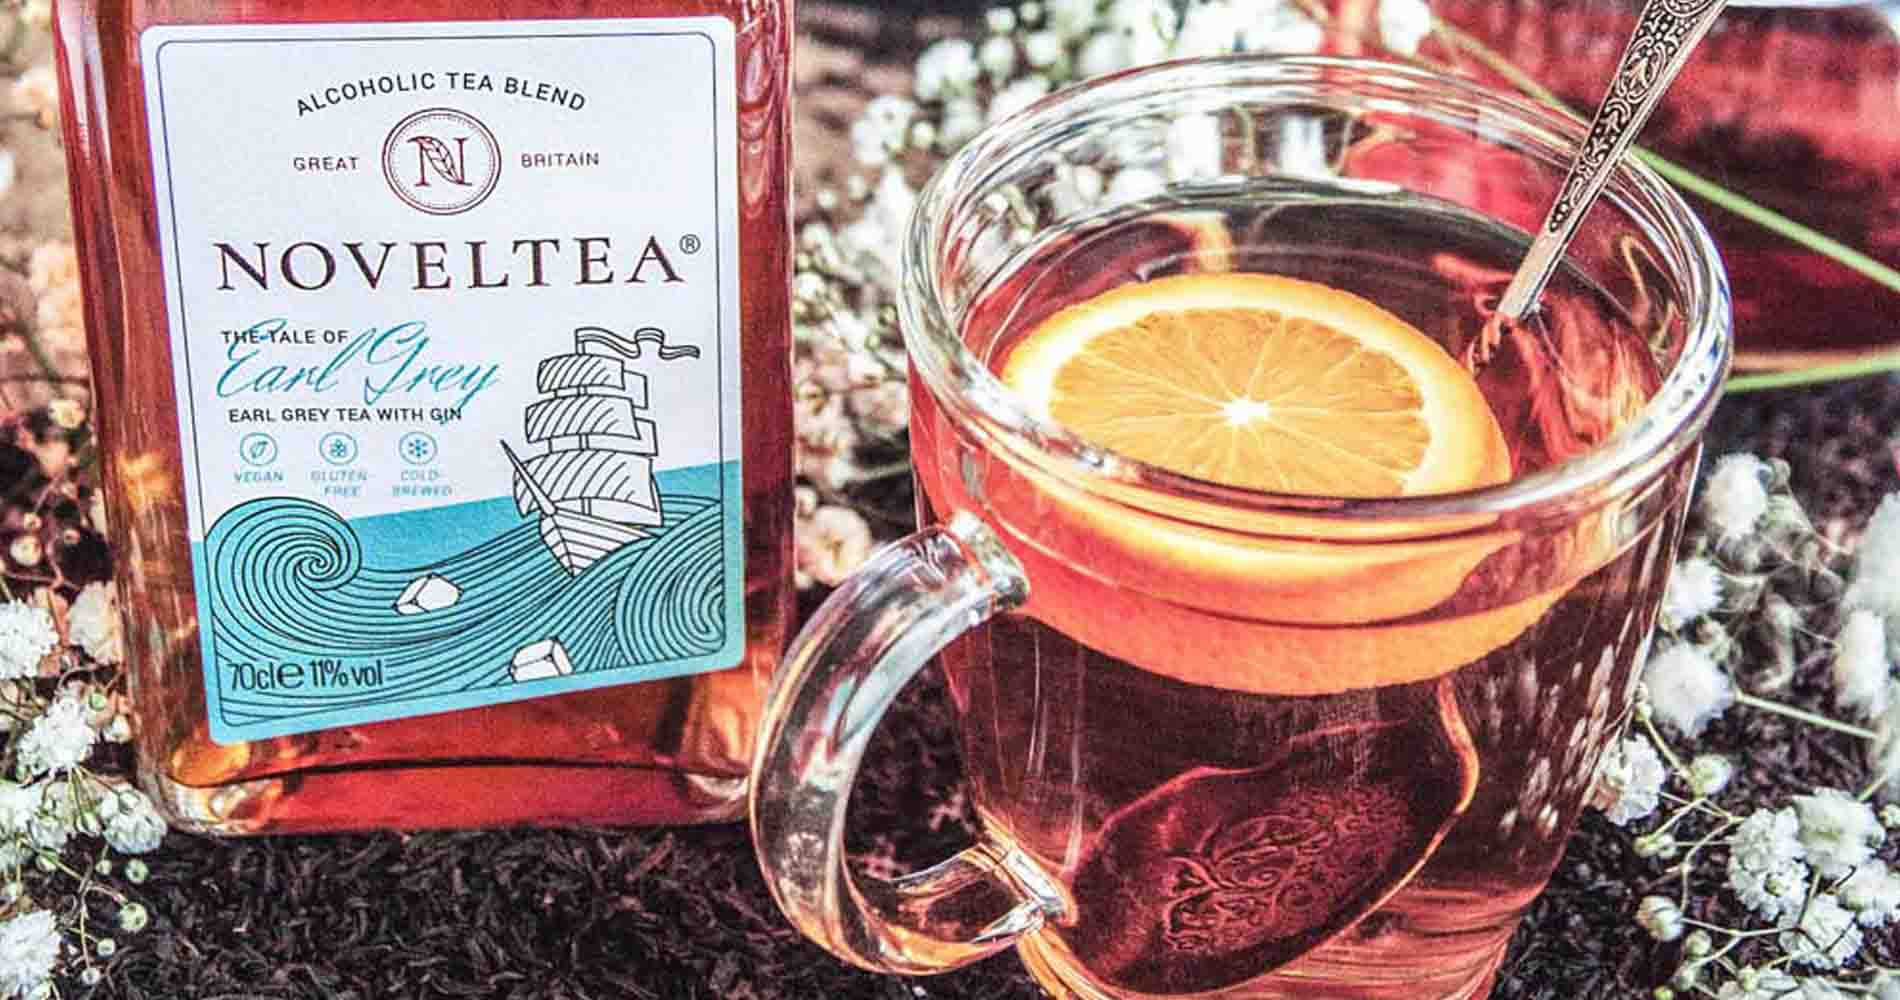 Noveltea Earl Grey